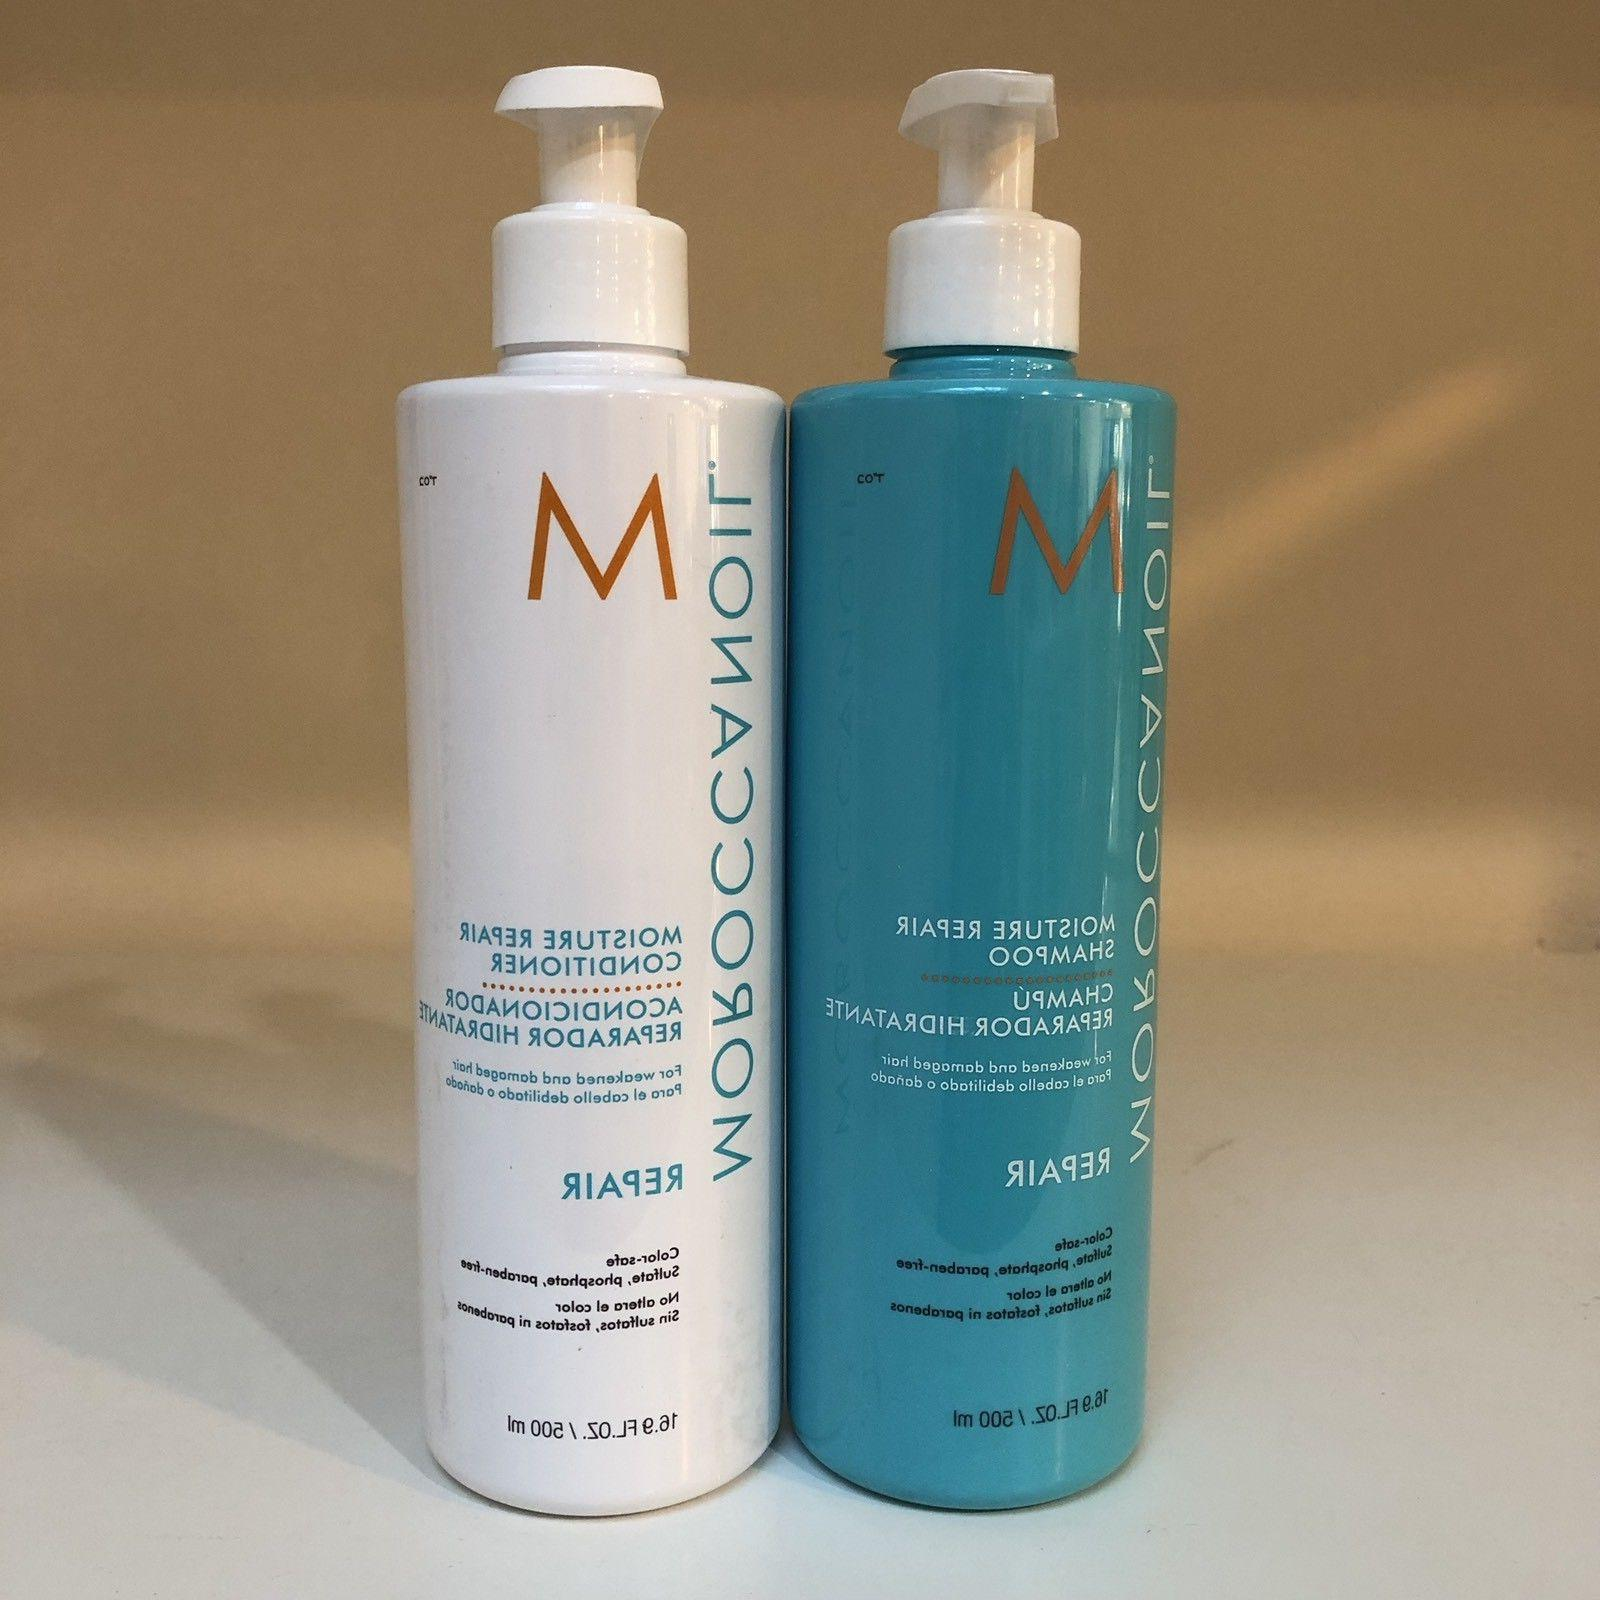 Moroccan Moisture Repair Shampoo & Conditioner - 8oz,